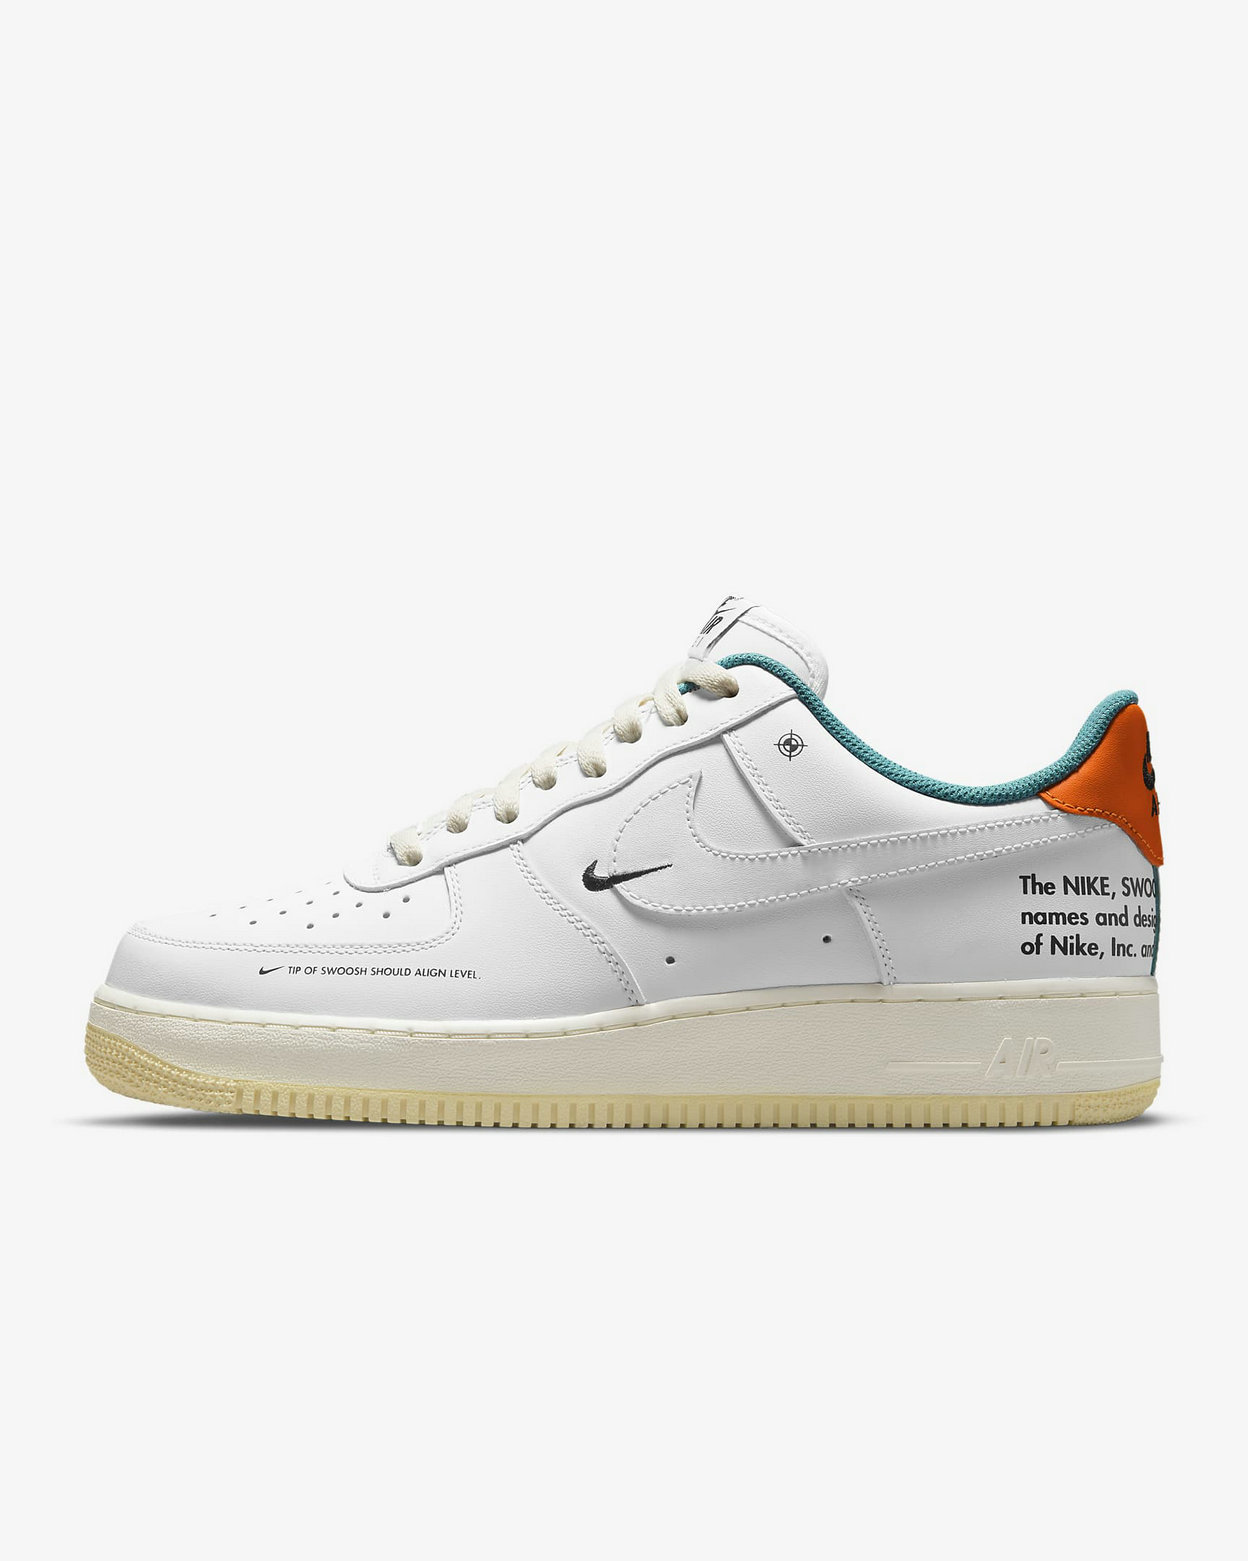 2021 Where To Buy Wholesale Cheap Nike Air Force 1 07 LE White Sail Starfish DM0970-111 - www.wholesaleflyknit.com